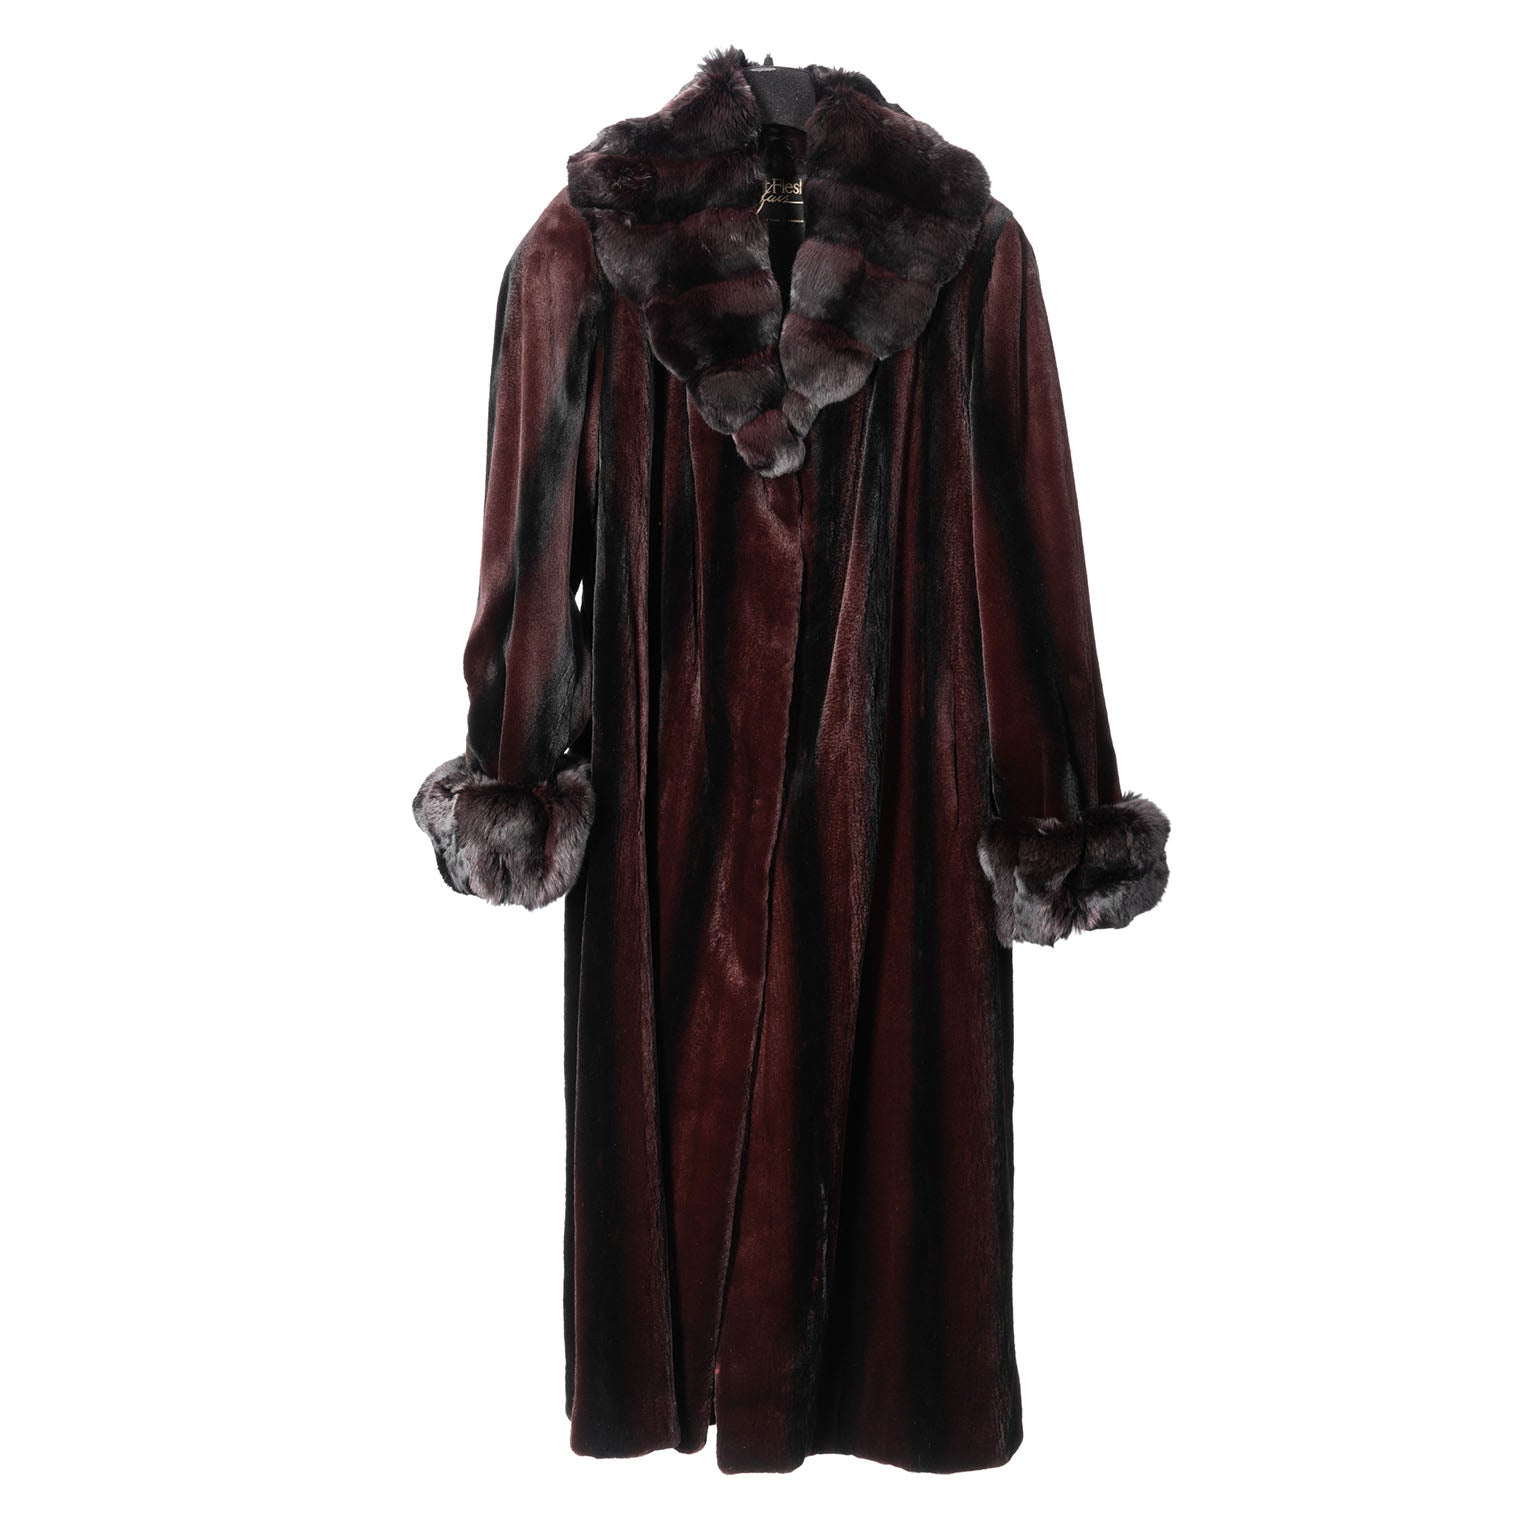 Bordeaux Degrade Sheared Mink Coat with Chinchilla Collar/Cuffs